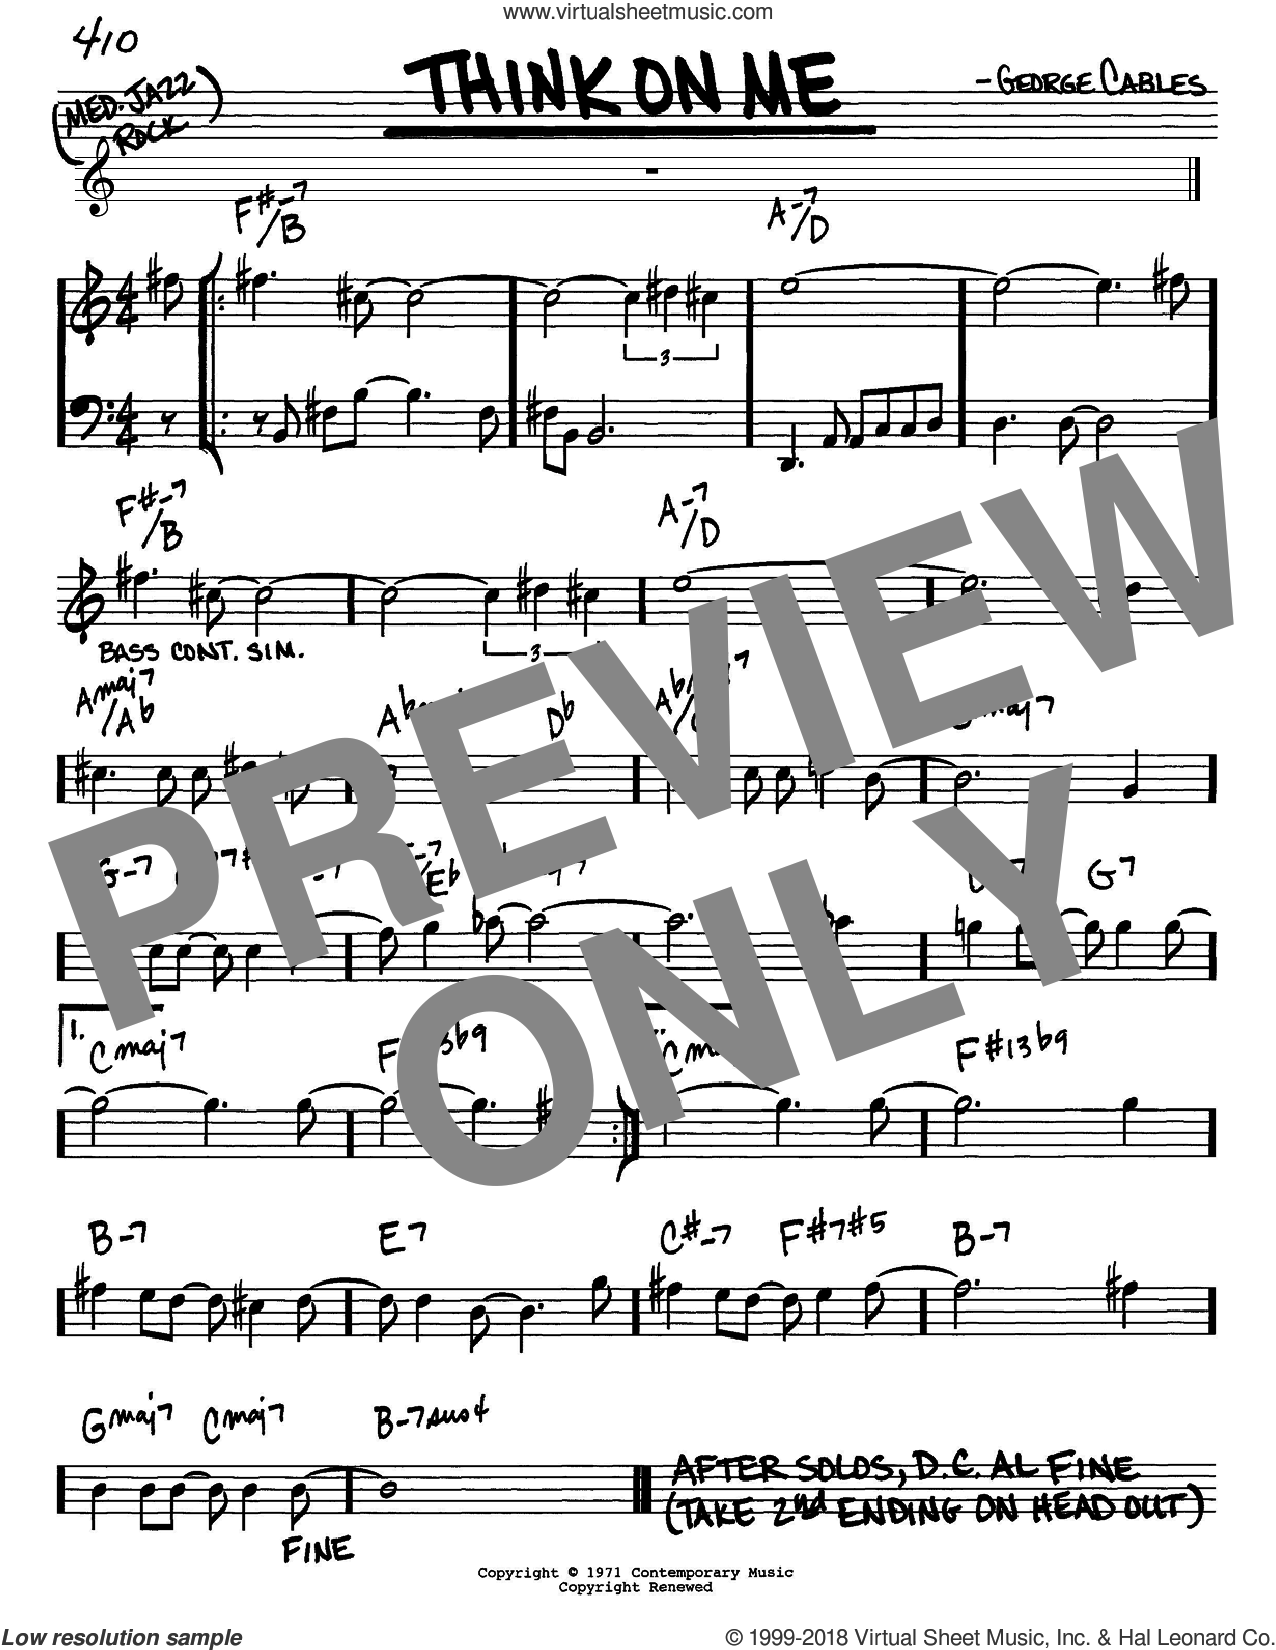 Think On Me sheet music for voice and other instruments (Eb) by George Cables. Score Image Preview.